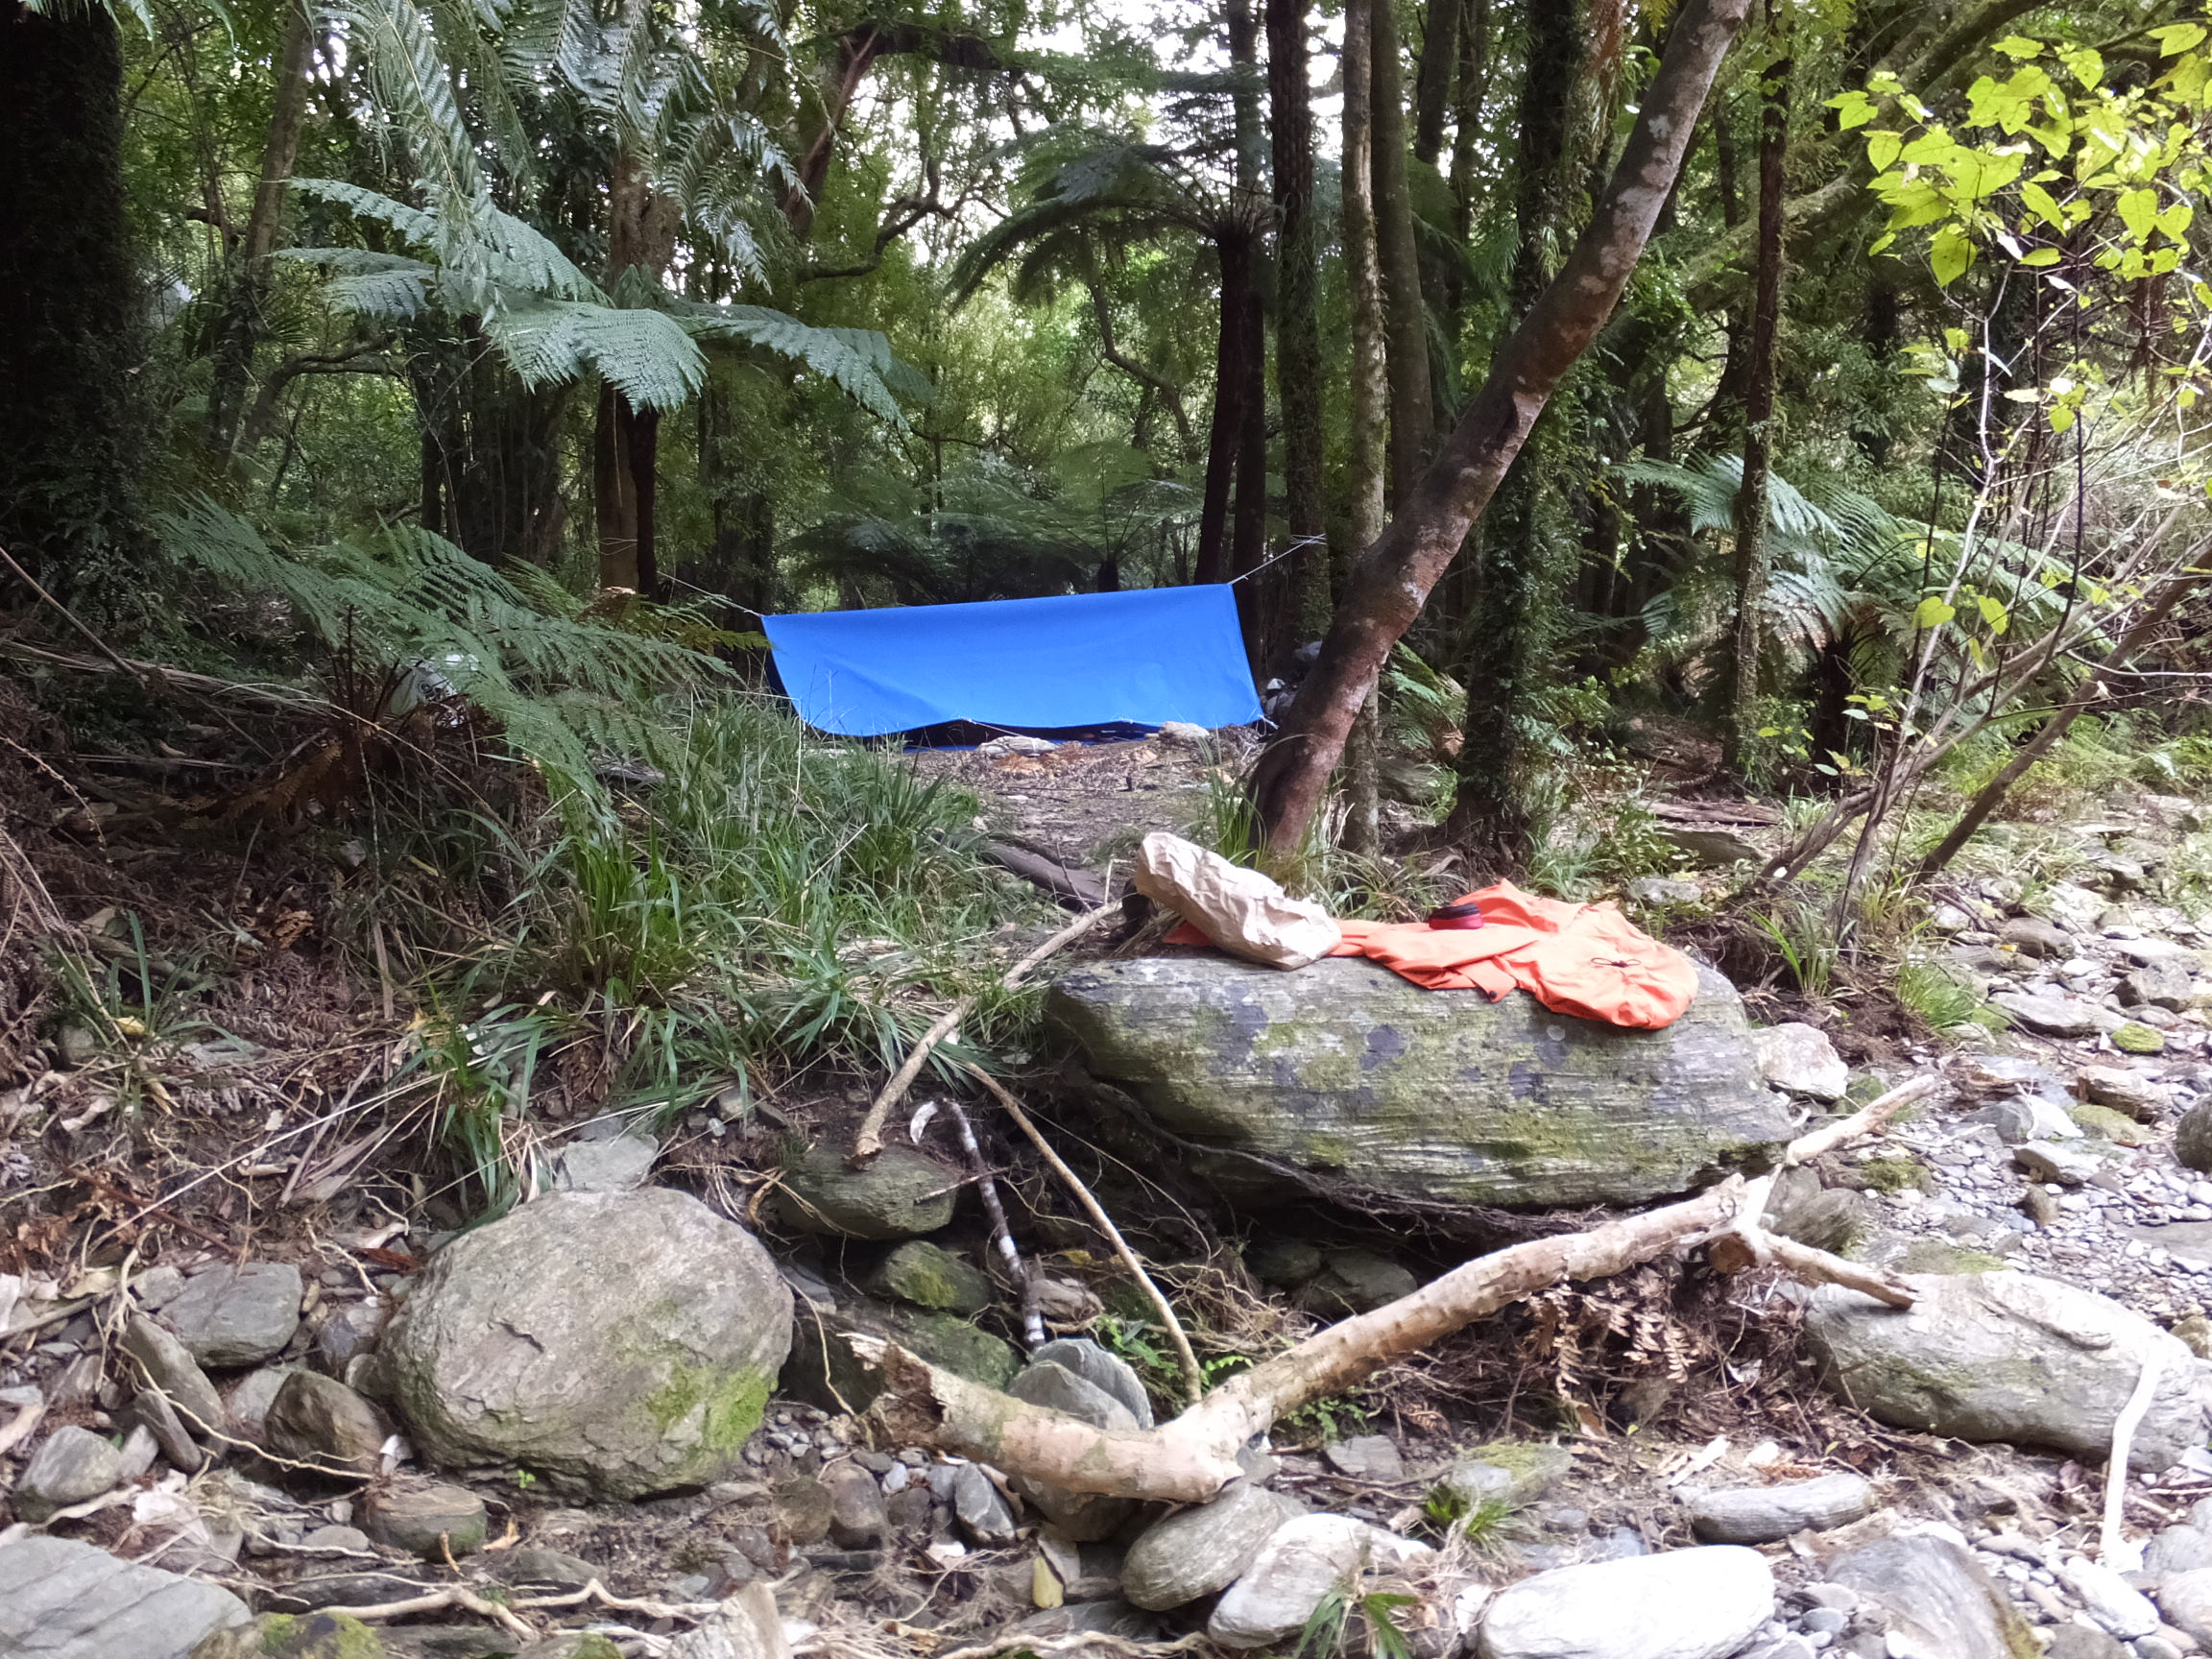 Part of the 21 day 'Classic' Outward Bound course that I did in 2014 involved a 3 day 'solo' - i.e. surviving by ourselves, with limited food and limited shelter for 3 nights. It is still something that I look back on today a a 'benchmark' of what I've accomplished. See that piece of blue material? That was my 'home' for 3 nights AND I LOVED IT!